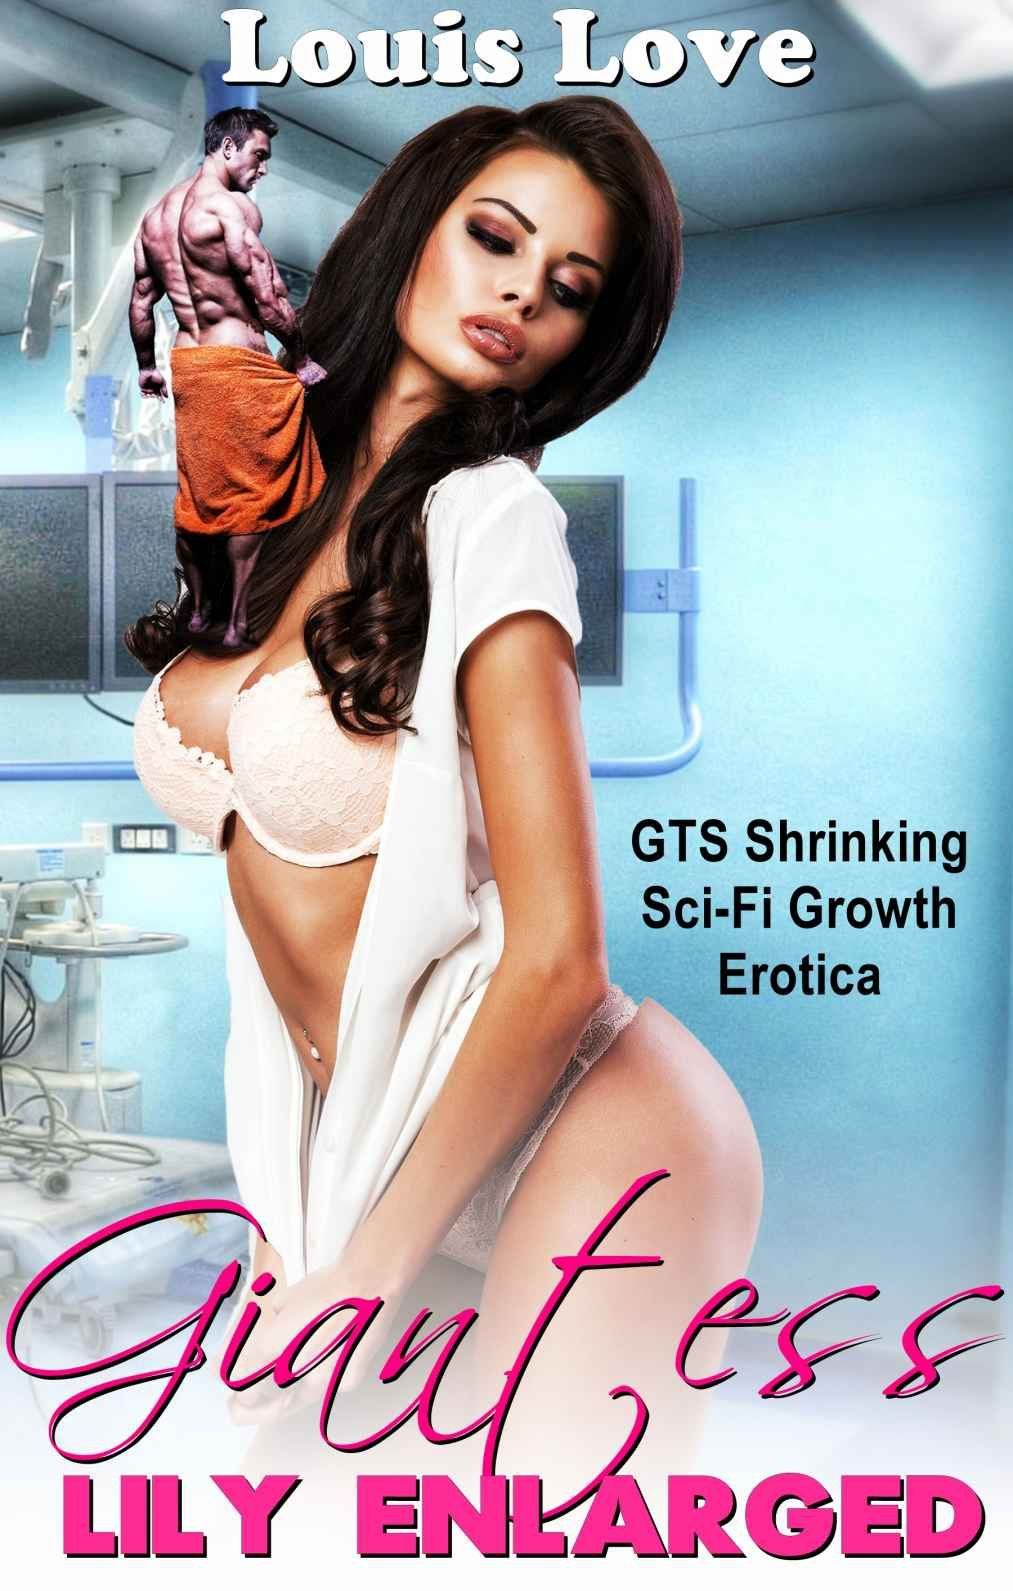 Giantess Lily Enlarged Gts Shrinking Sci Fi Growth Erotica Giantess Shrinking Fetish Book  Kindle Edition By Louis Love